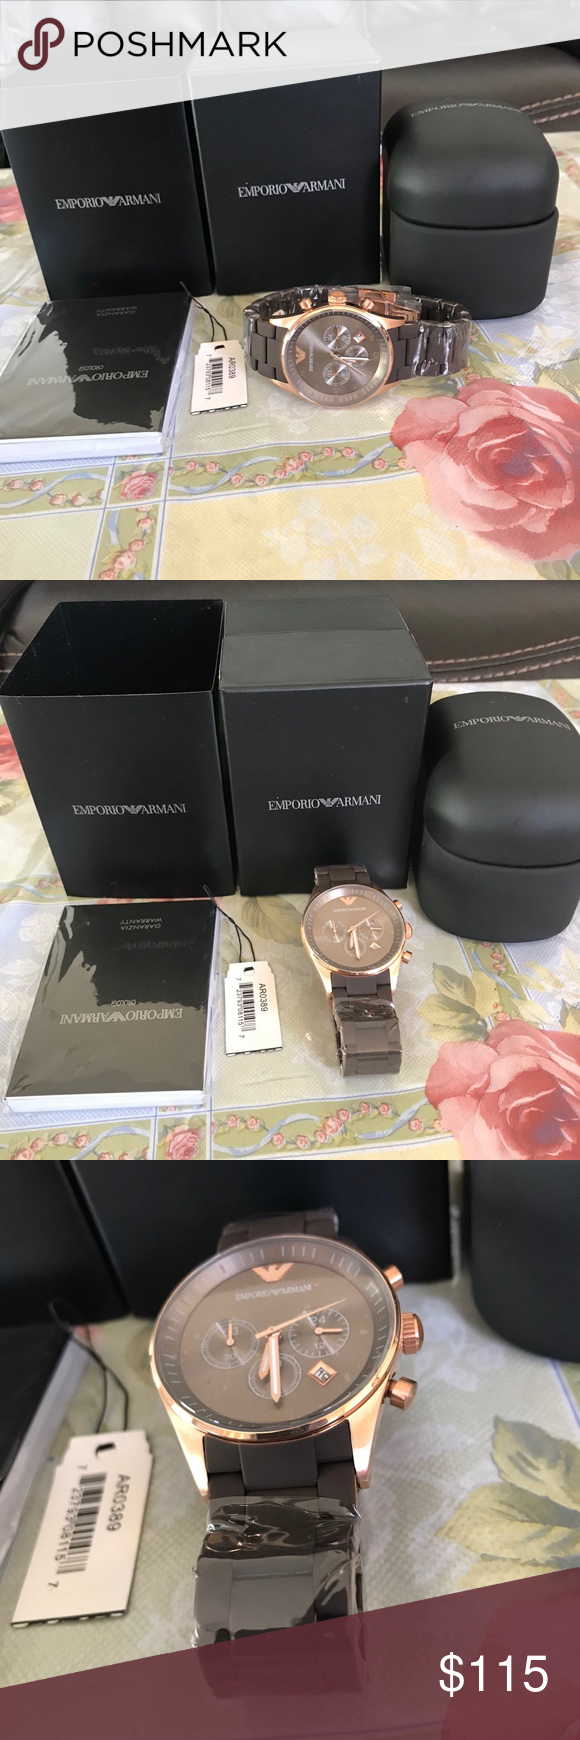 440bd53e1c0b Brand new Emporio Armani watch with og box I m selling a brand new Emporio